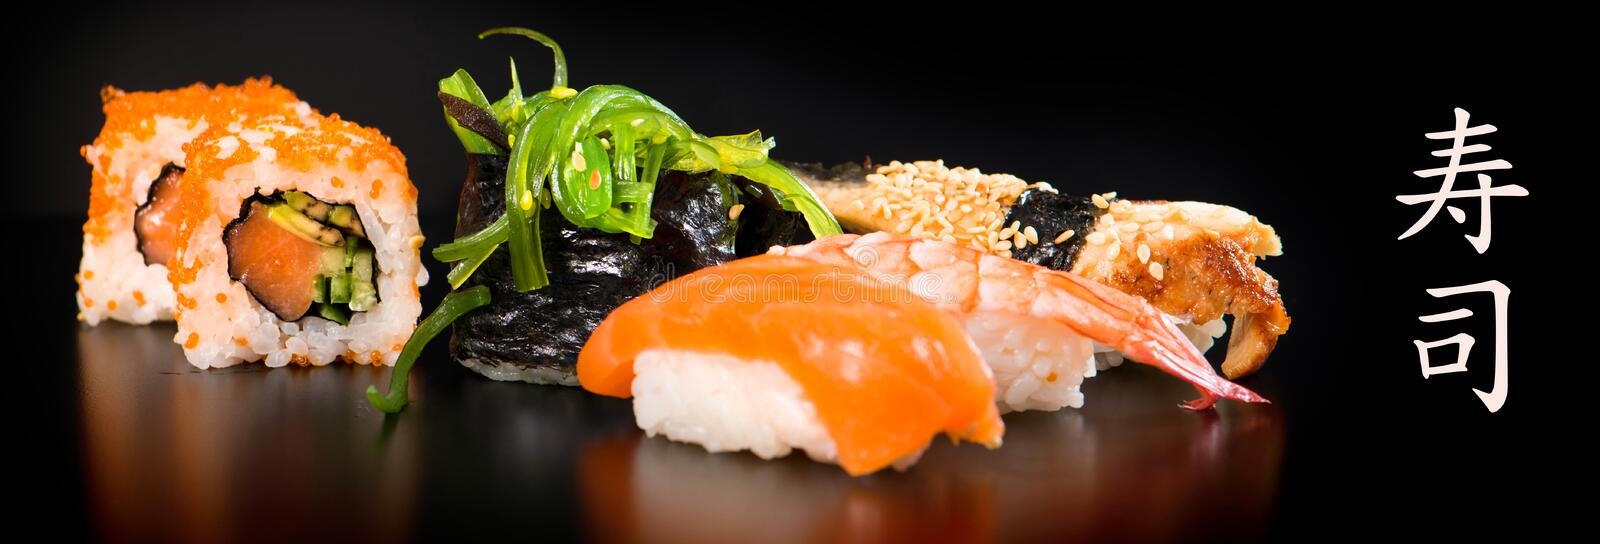 Sushi and Rolls stock photography